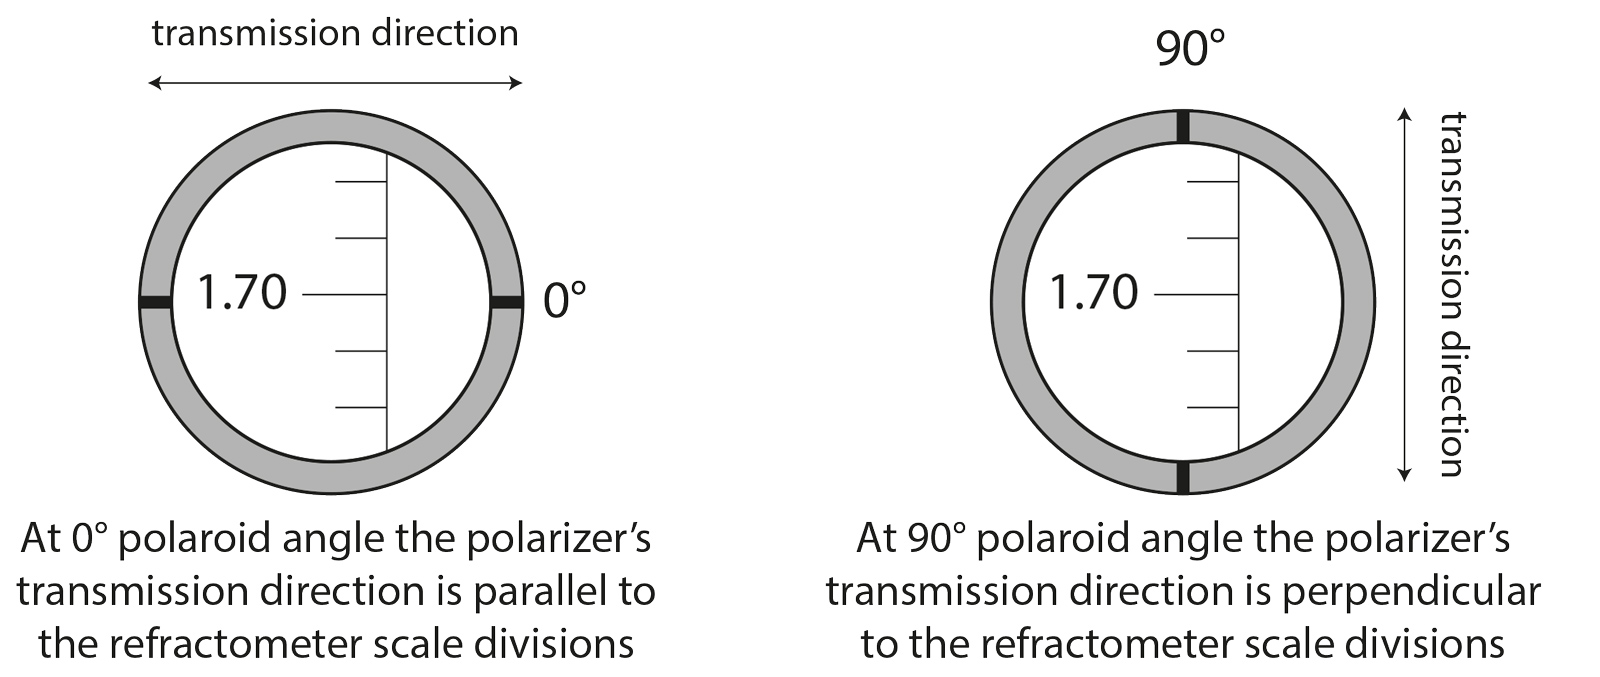 Figure 3. Use of the refractometer polaroid angle can help to determine both optic character and sign from any single facet on any stone. The 0° angle is when the transmission direction of the refractometer eyepiece polarizer is parallel to the scale divisions of the refractometer. One can easily determine the transmission direction of the eyepiece polarizer by rotating it in front of an LCD computer monitor and noting the direction of strongest light transmission. The edge of the filter than then be marked, as shown above. Illustration © Richard W. Hughes. Click on the figure for a larger example.